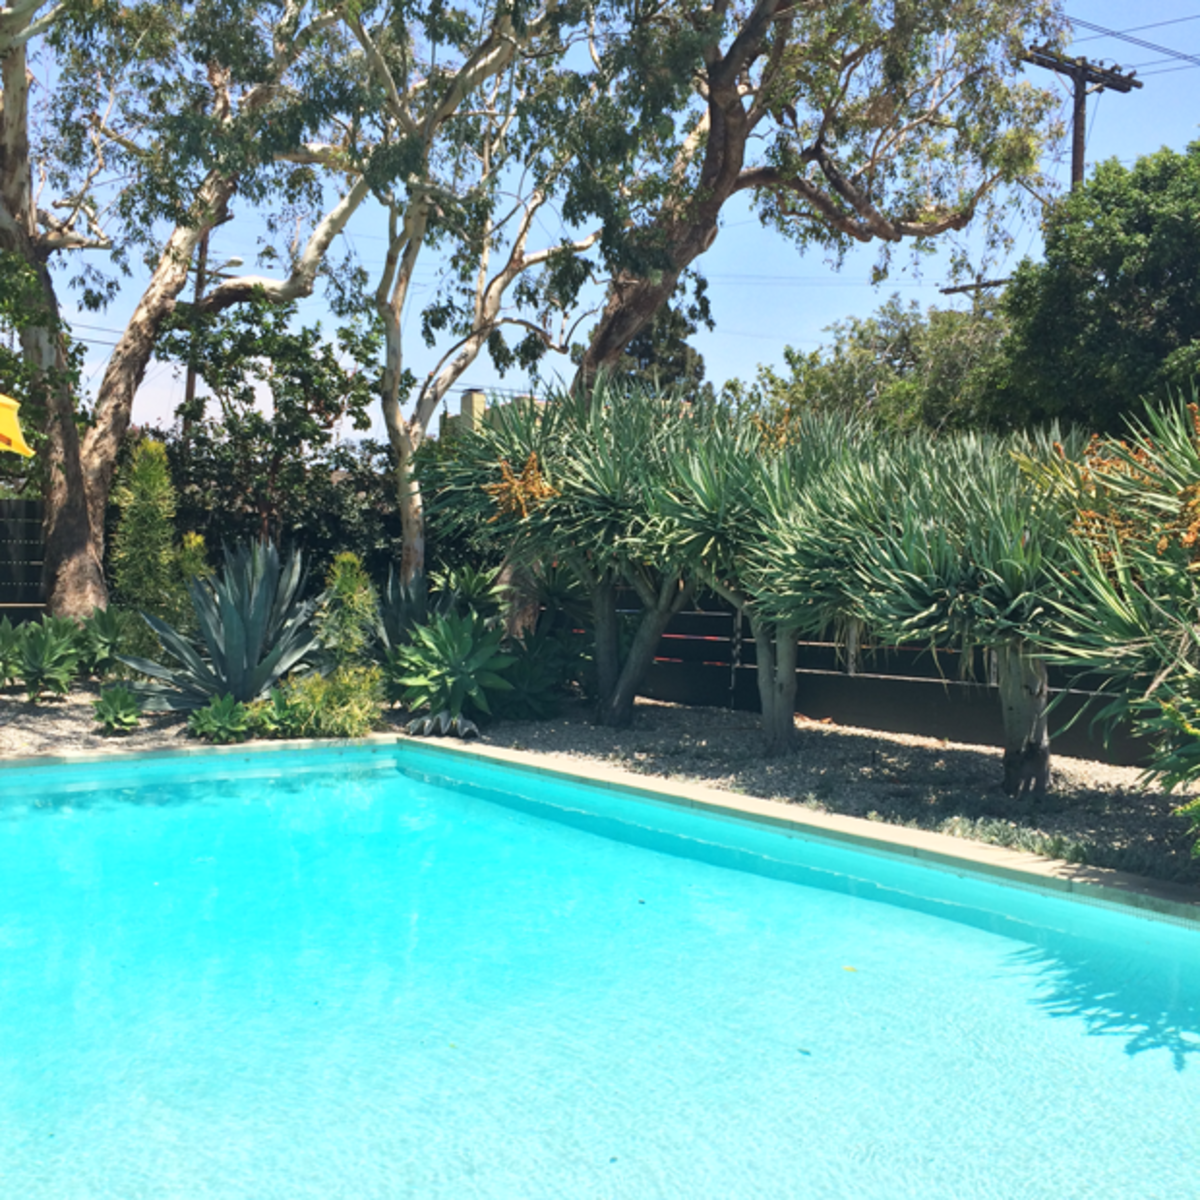 {Quintessential California pool at an event at Trina Turk's house}